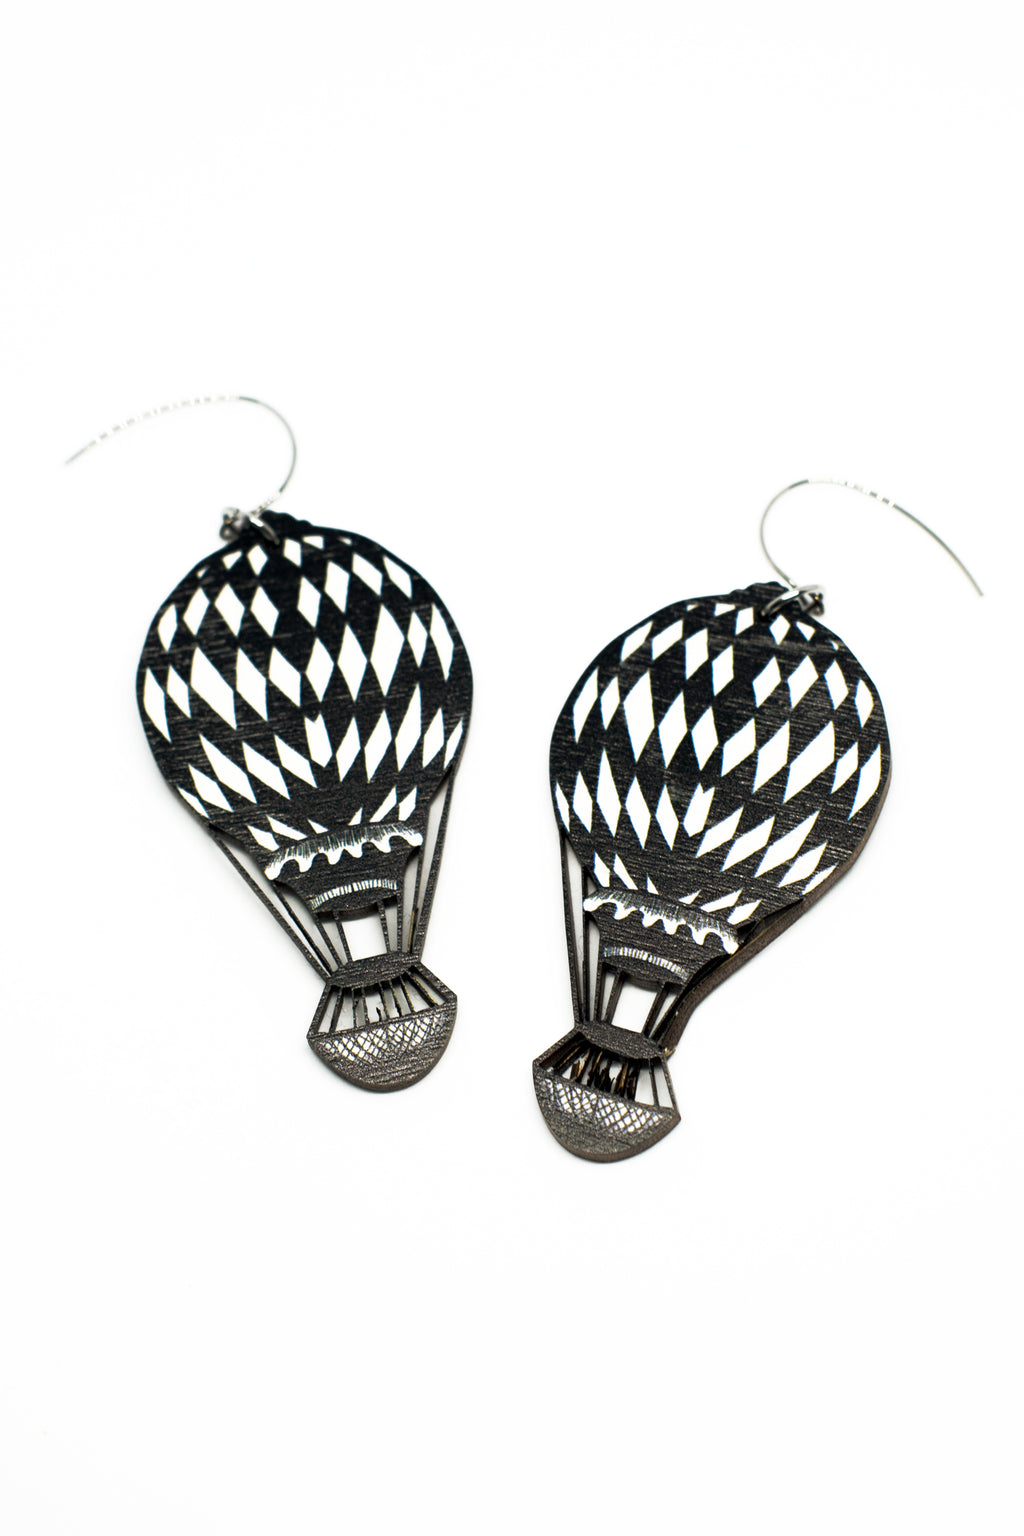 Adventure Earrings, Black And White, Wood